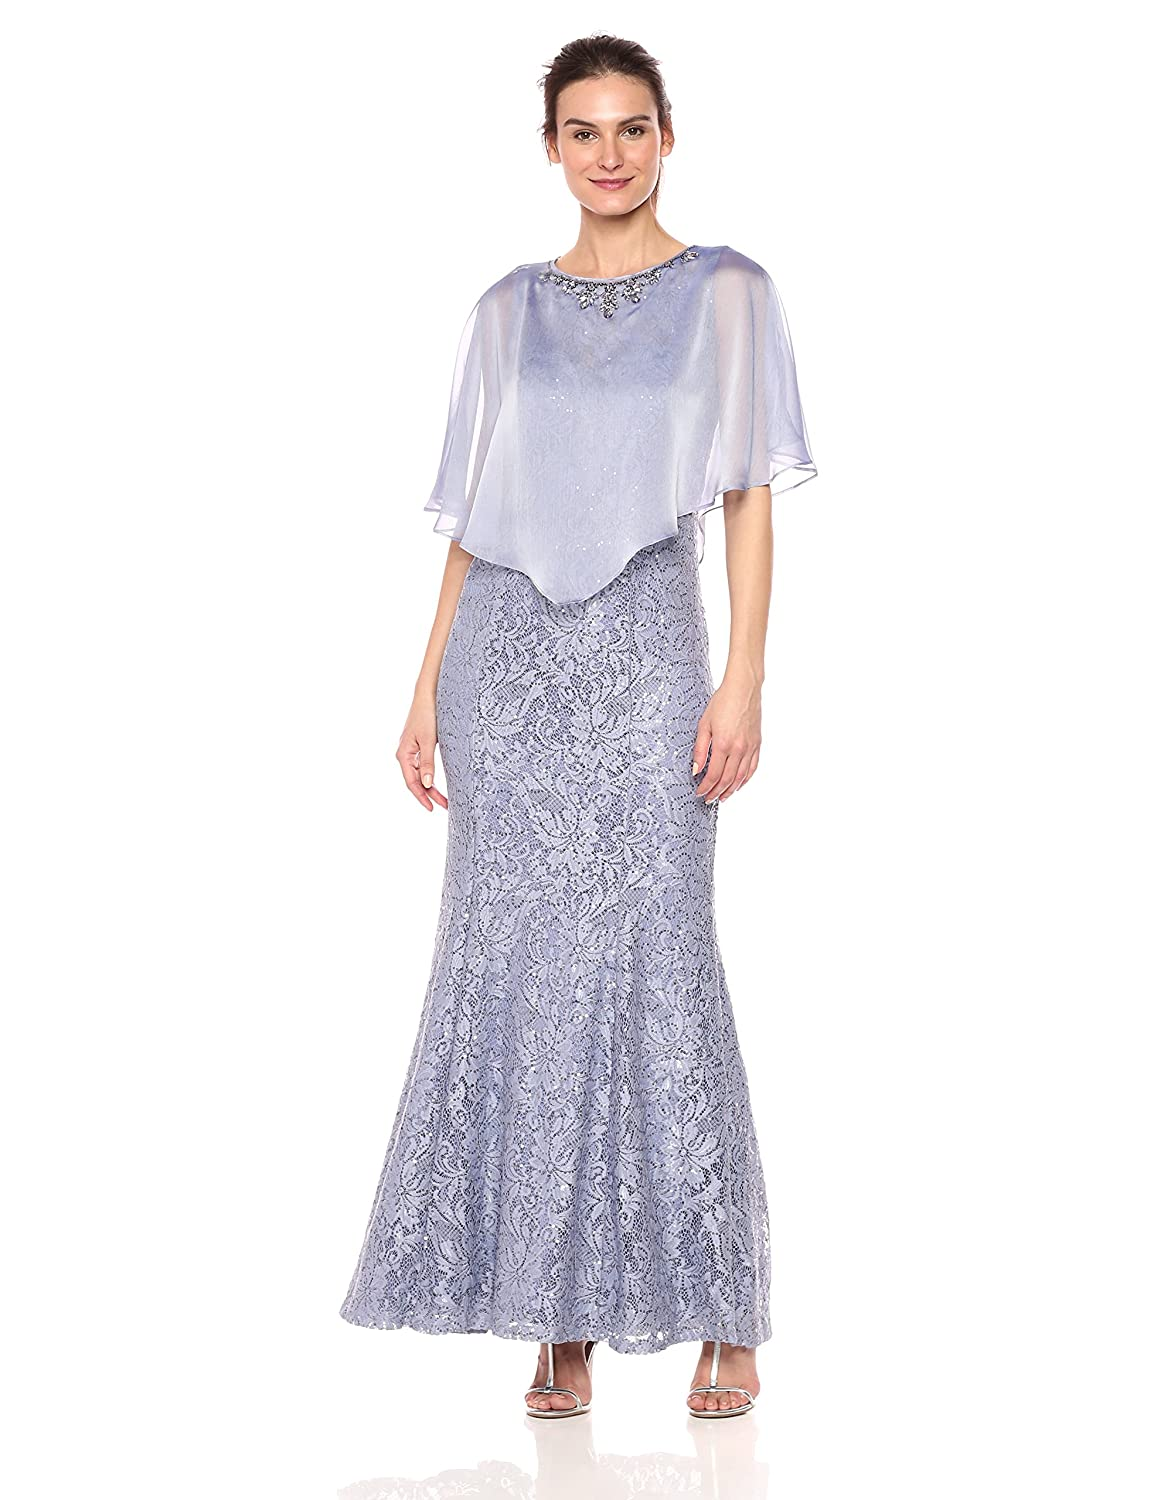 Peri Ignite Womens Sequin Lace Beaded Cape Gown Dress